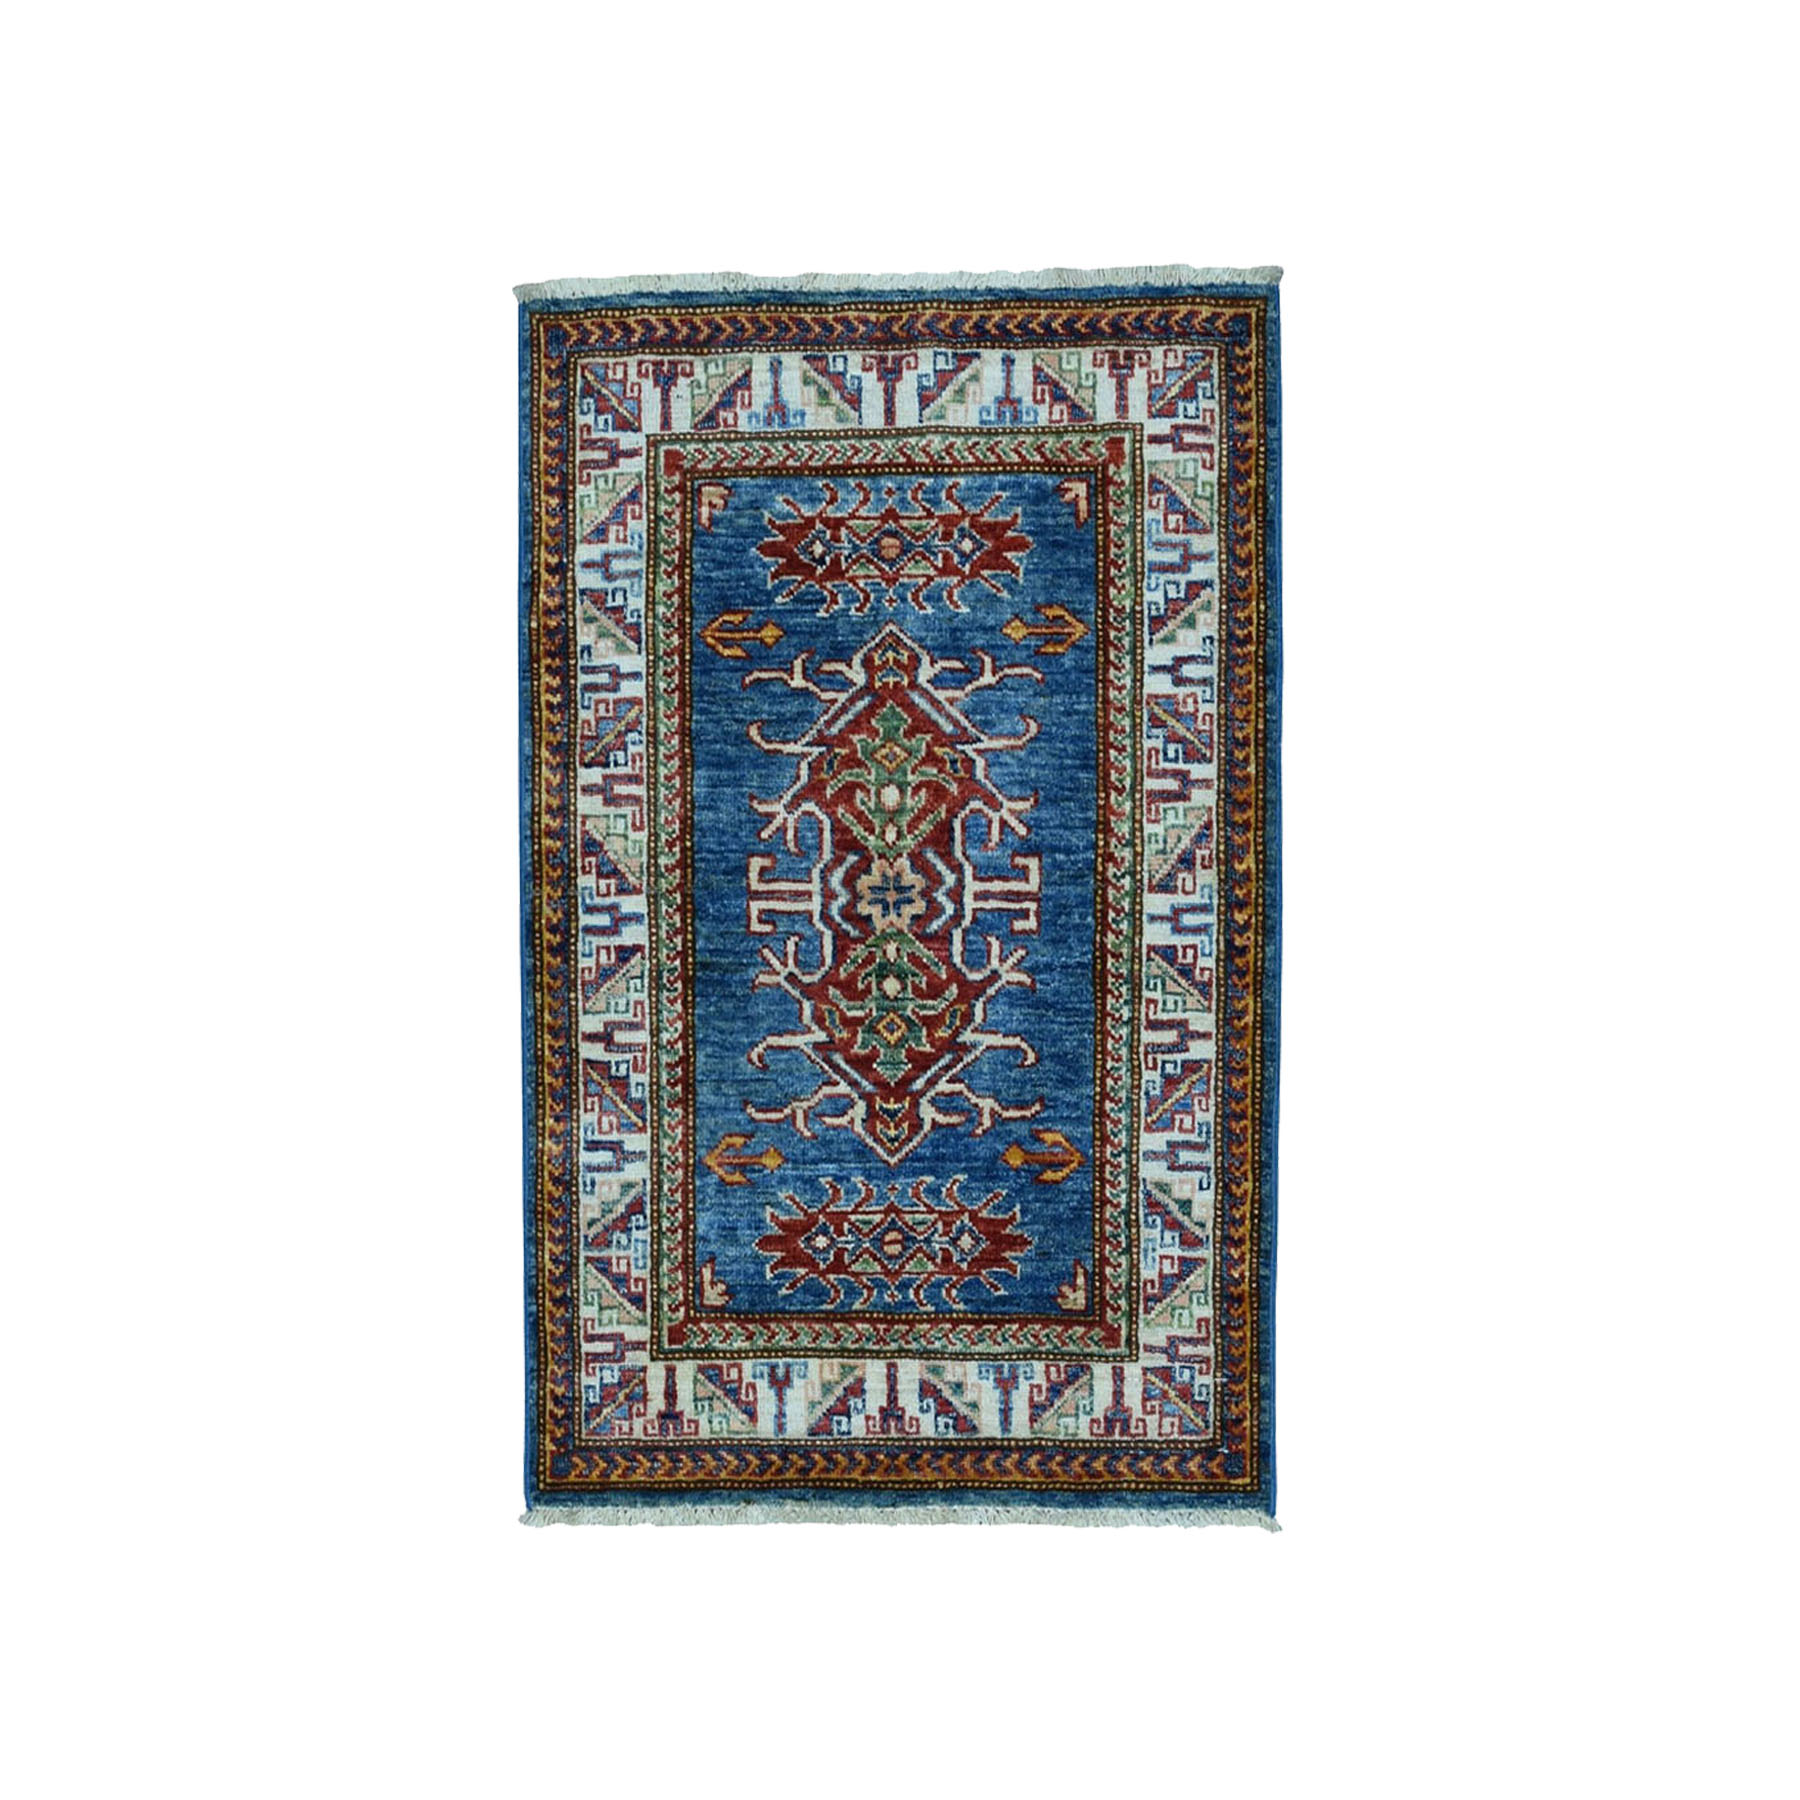 "2'2""x3' Blue Super Kazak Pure Wool Geometric Design Hand Woven Oriental Rug"